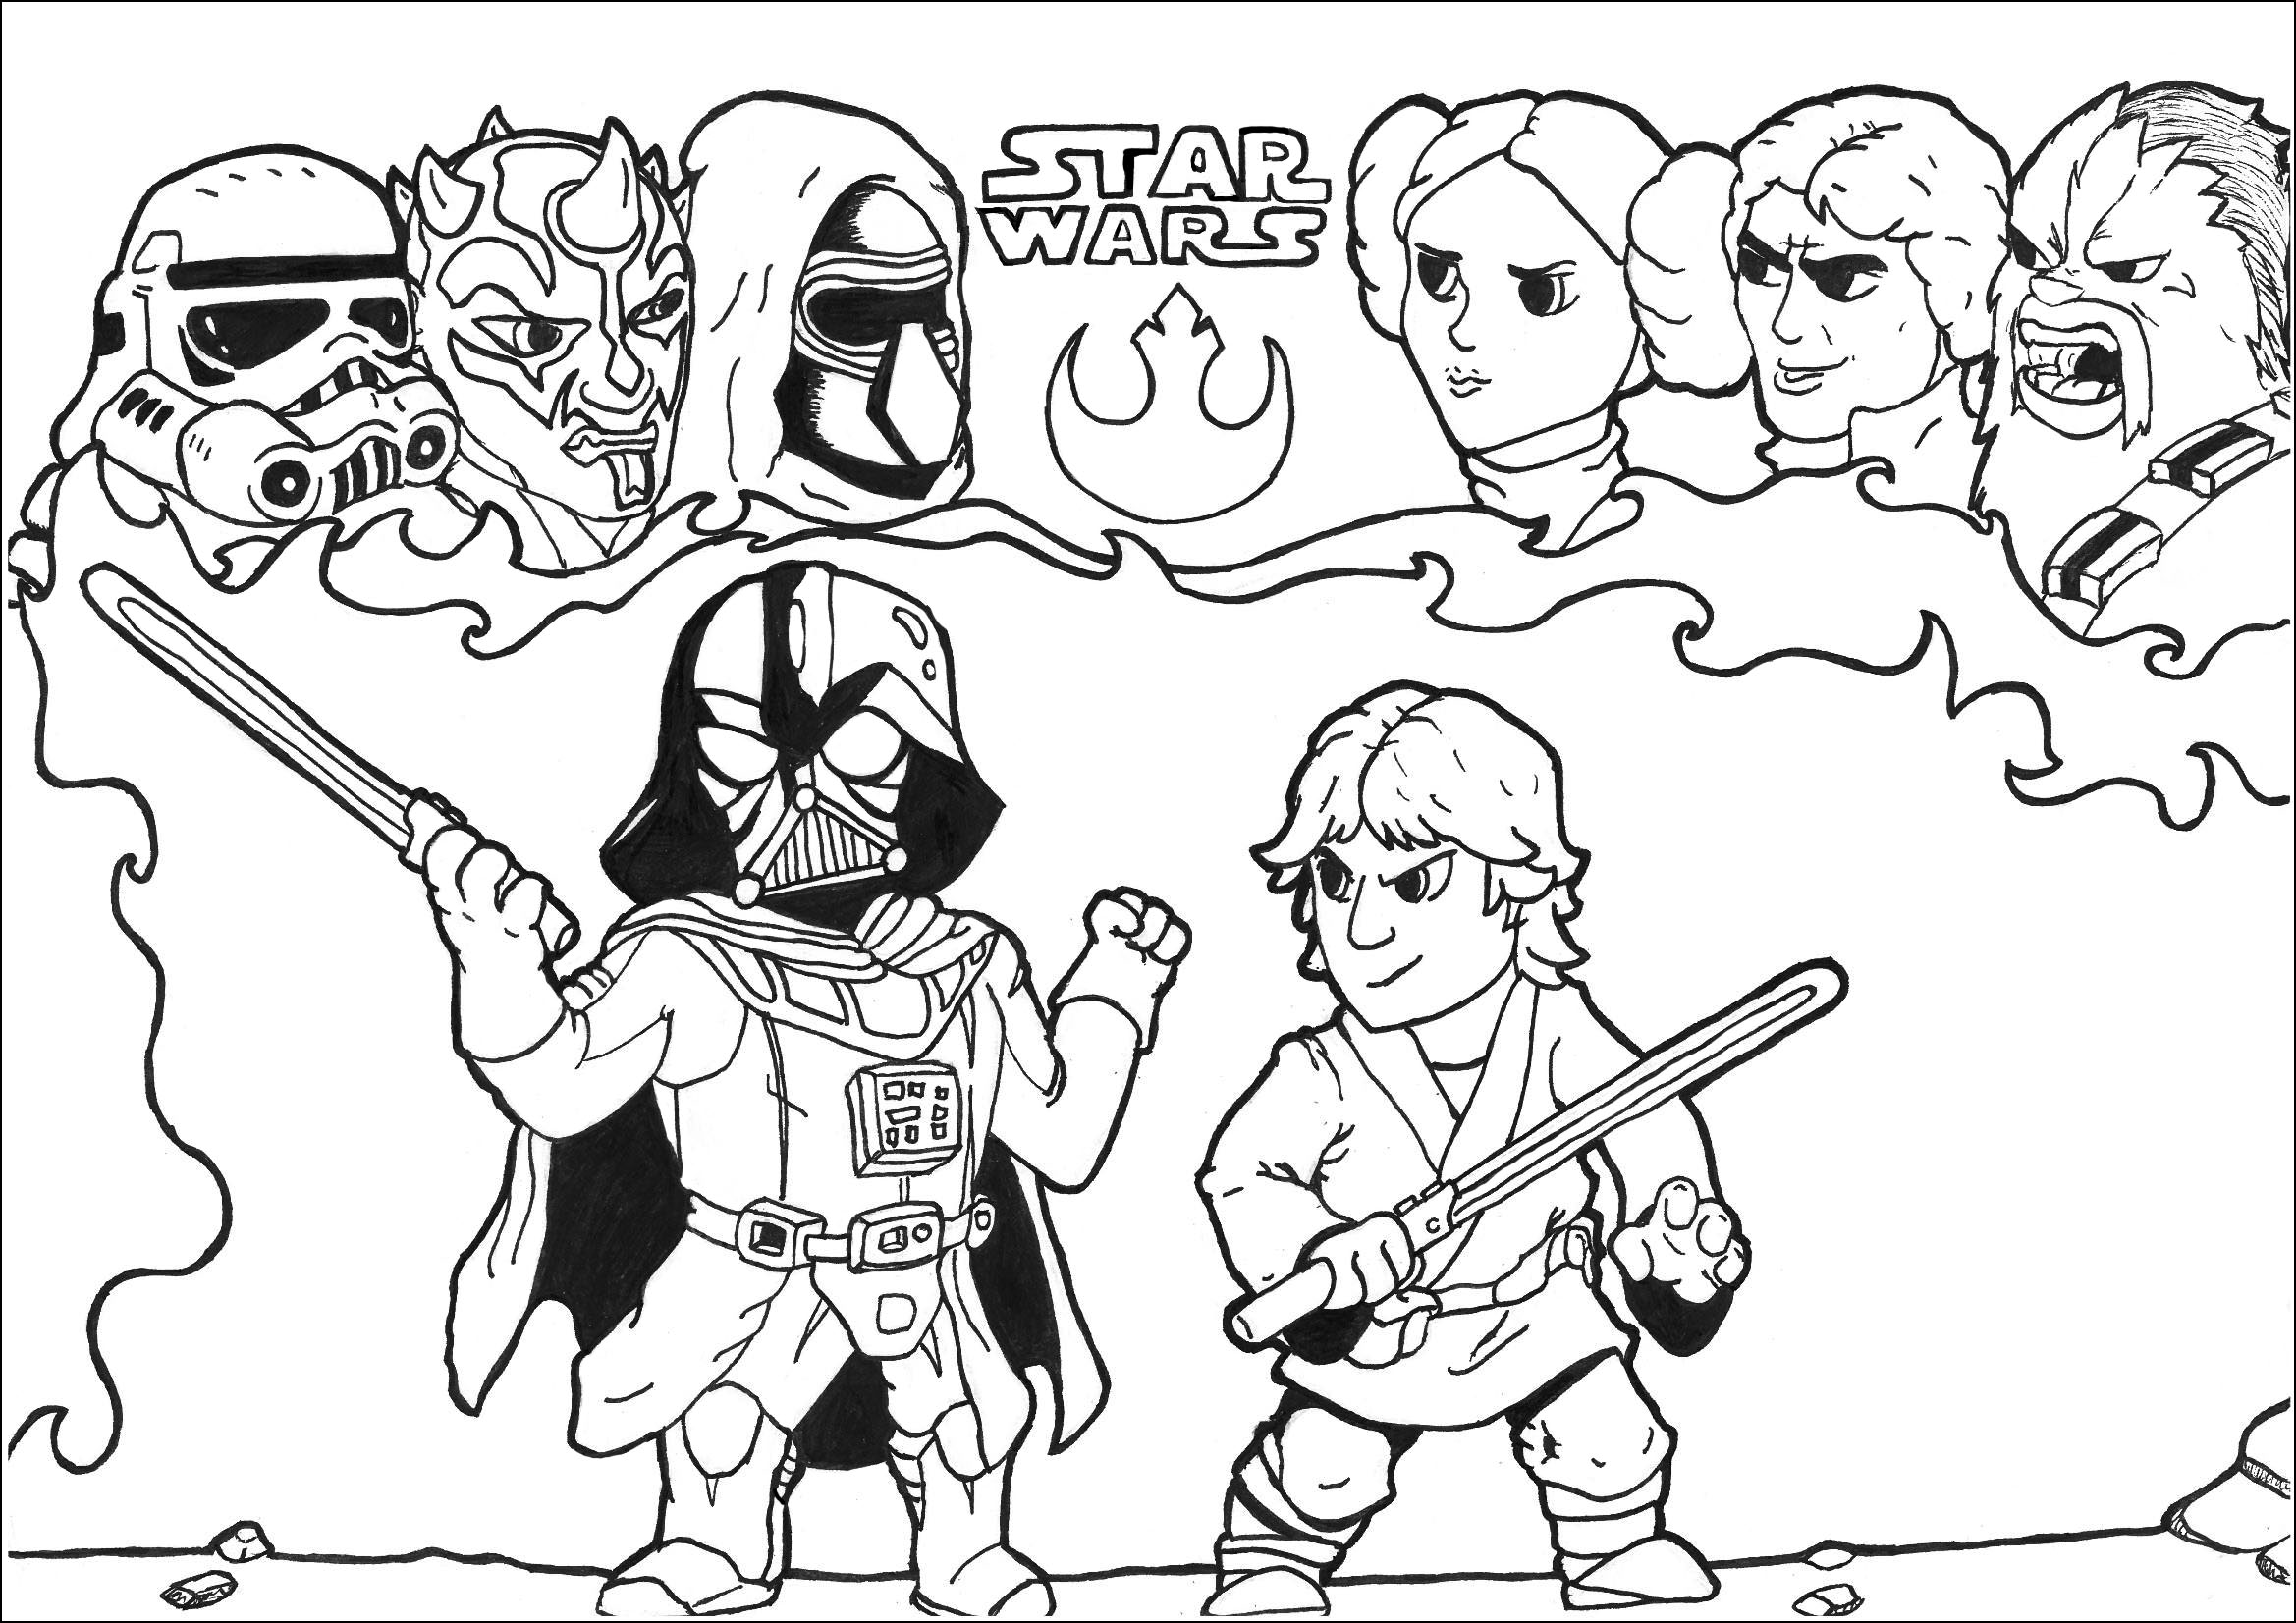 Coloring Page Inspired By The Cult Movie Star Wars Featuring A Fight Between Luke Skywalker And Darth Vader In Background Friends Of Fighter